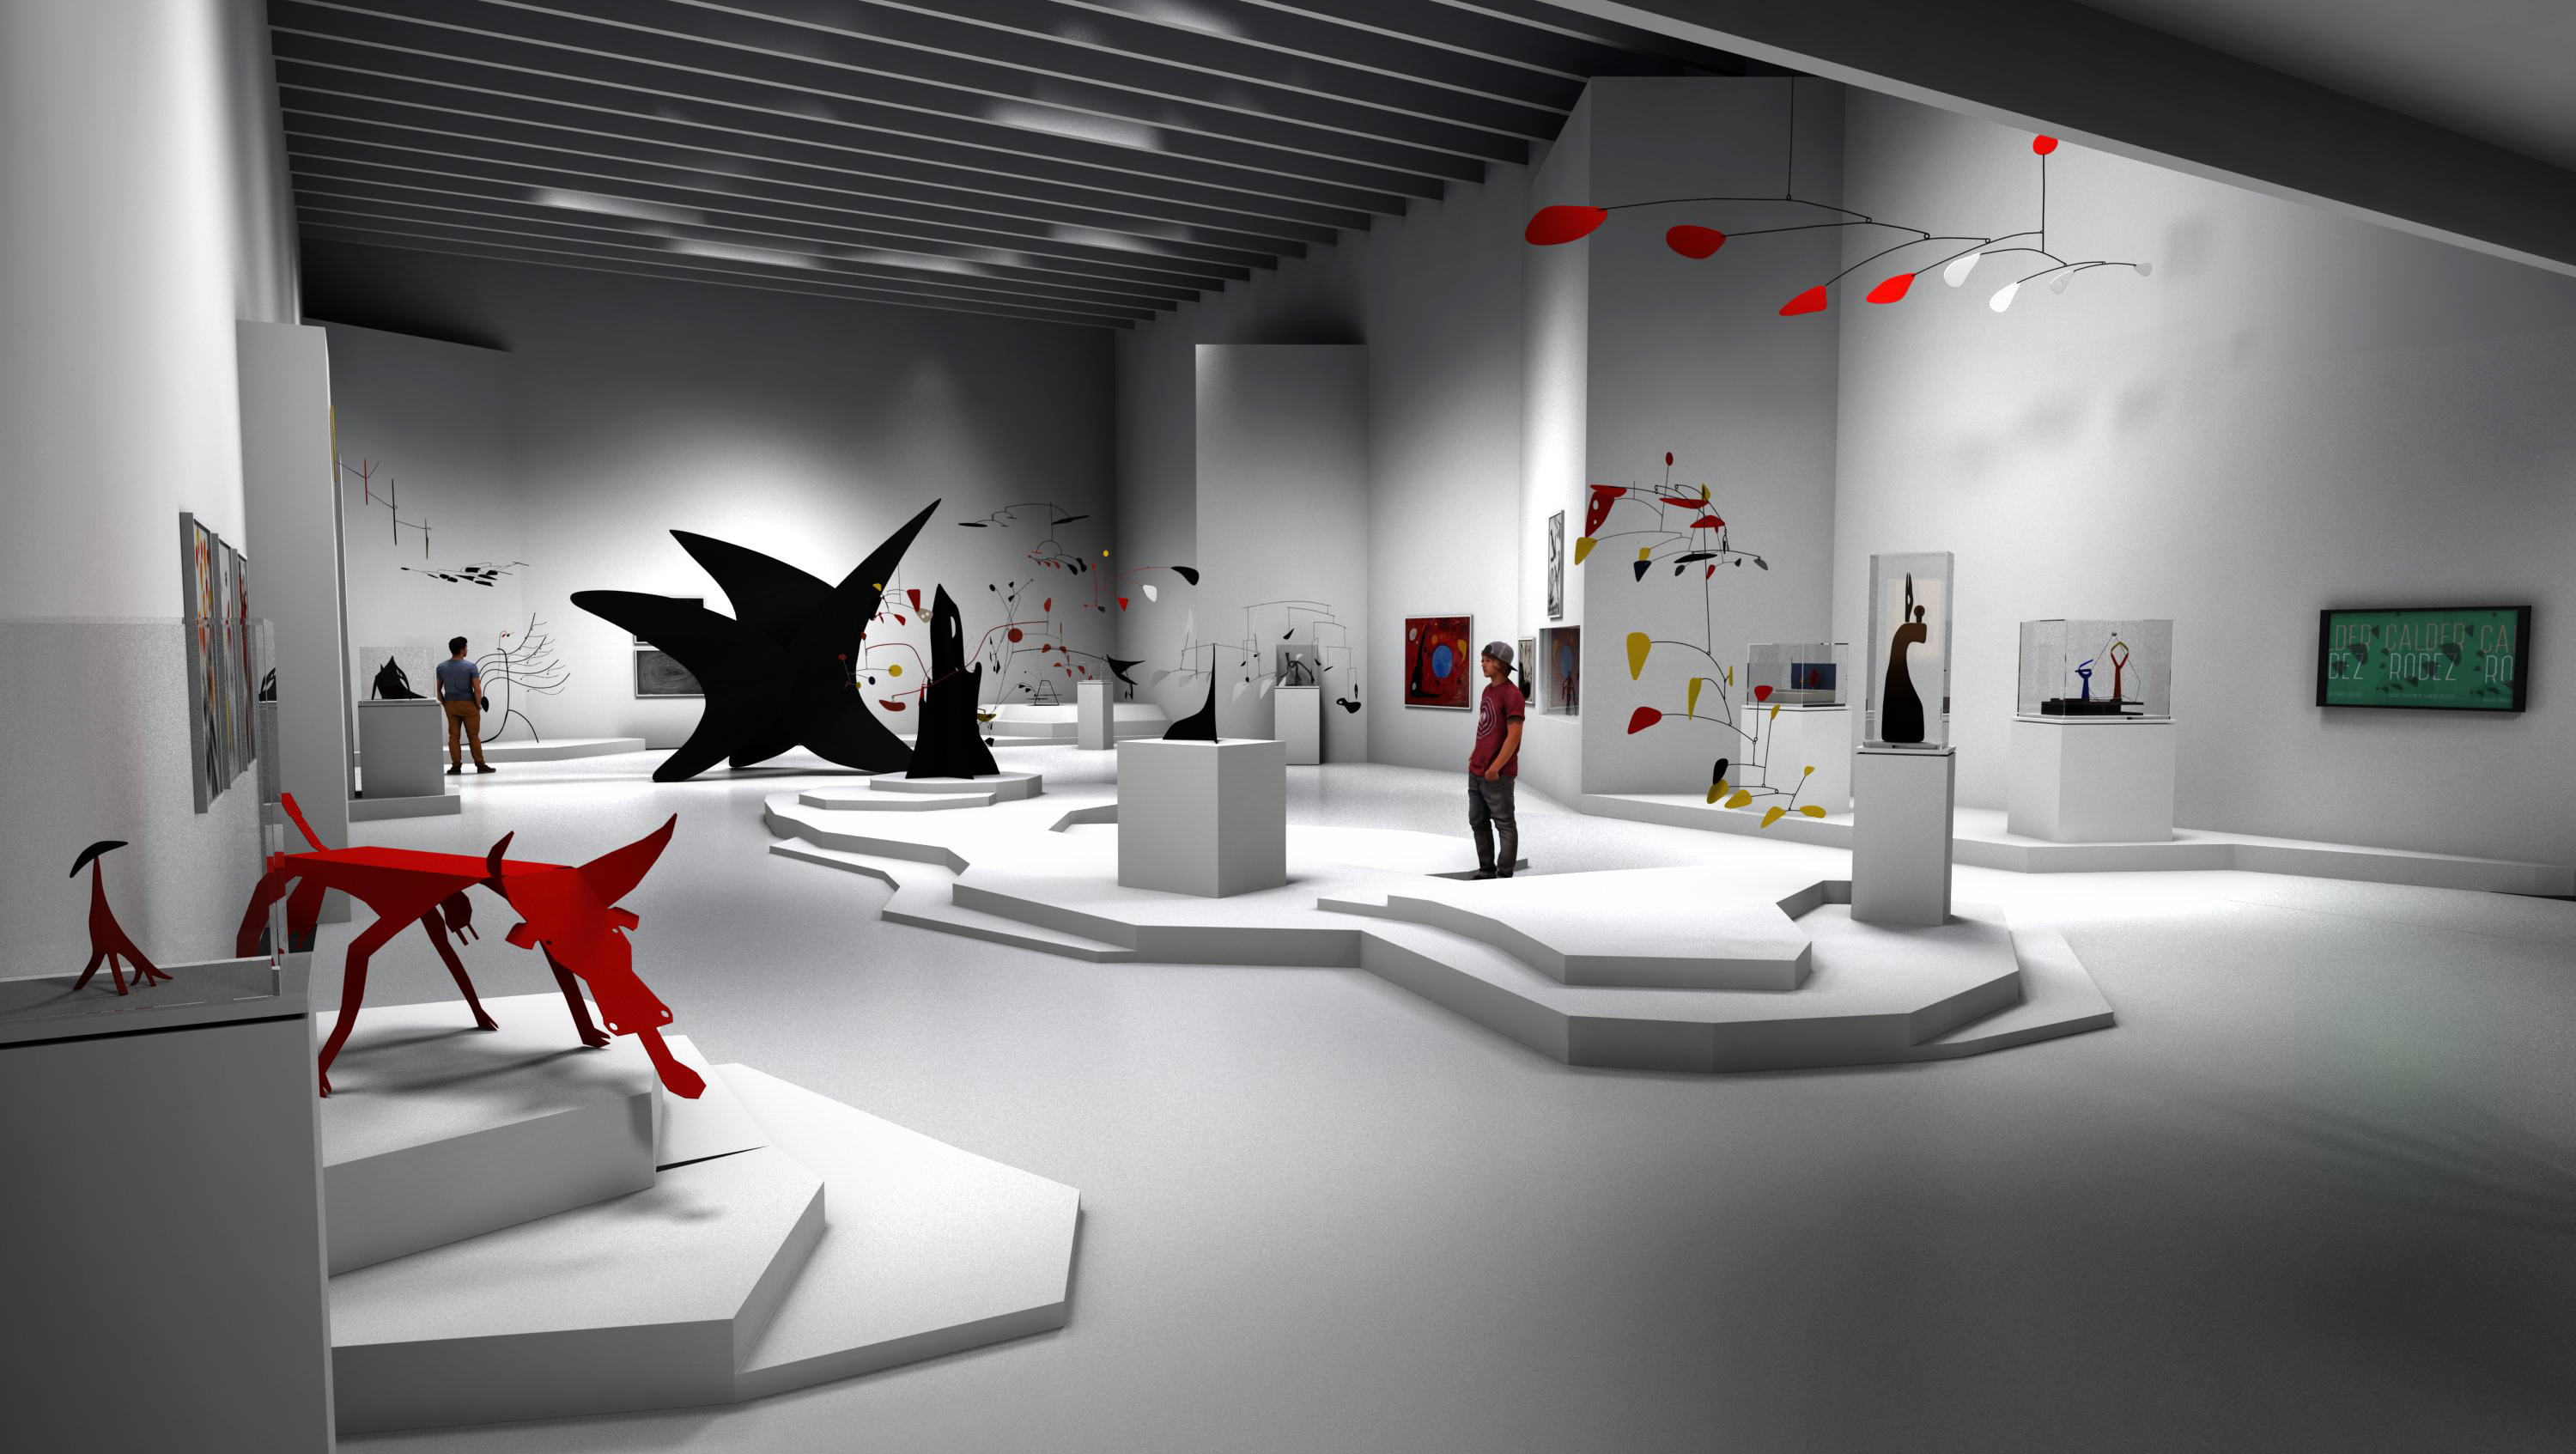 calder_newsletterburlat_image-1